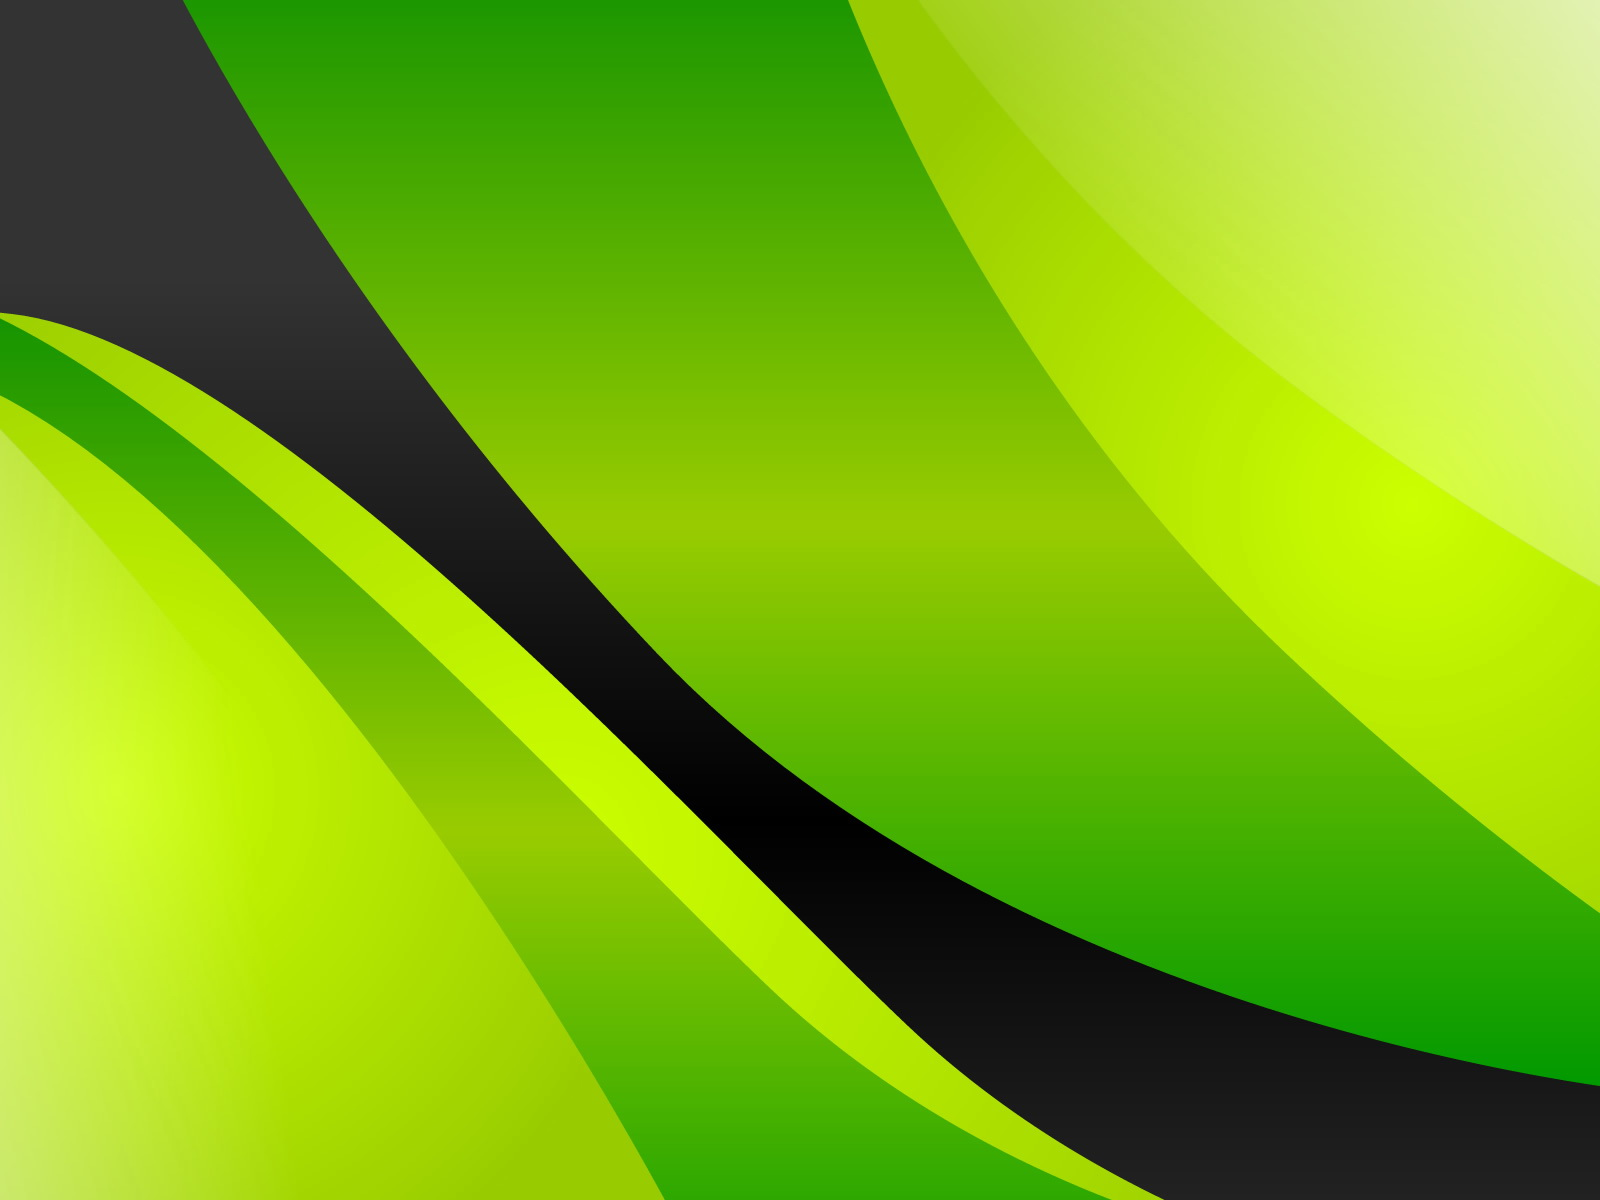 Green Art Wallpaper